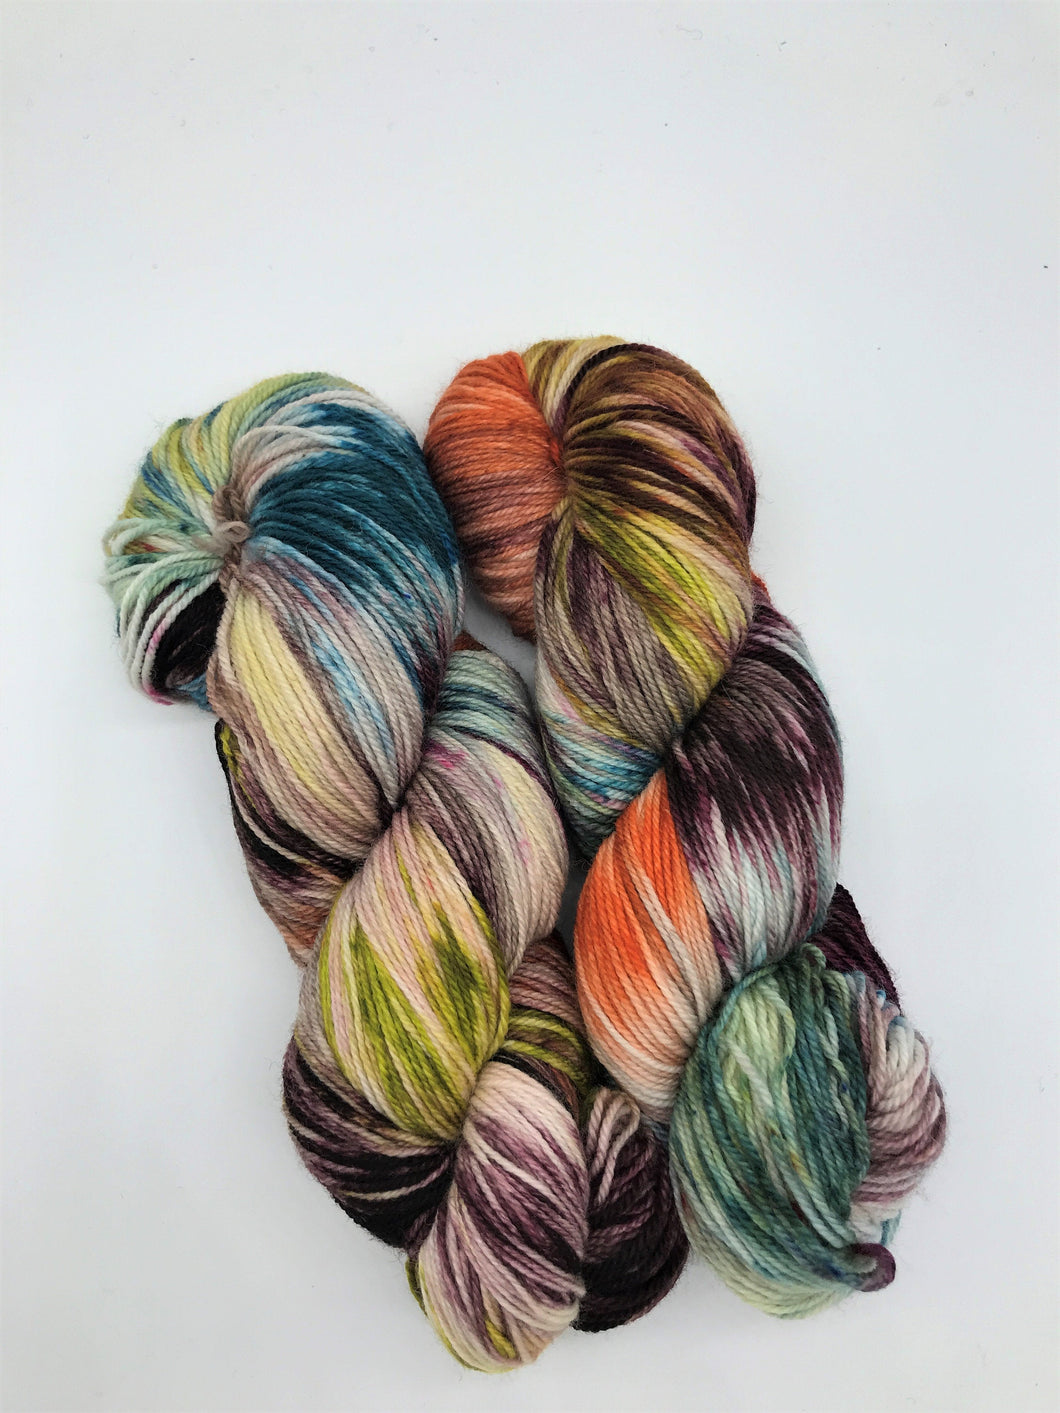 Snake Charmer - Hand Dyed Fingering - 3 PLY - 80/20 SW Merino/ Nylon in multi colour for crochet and knitting, toques, shawls, sock yarn